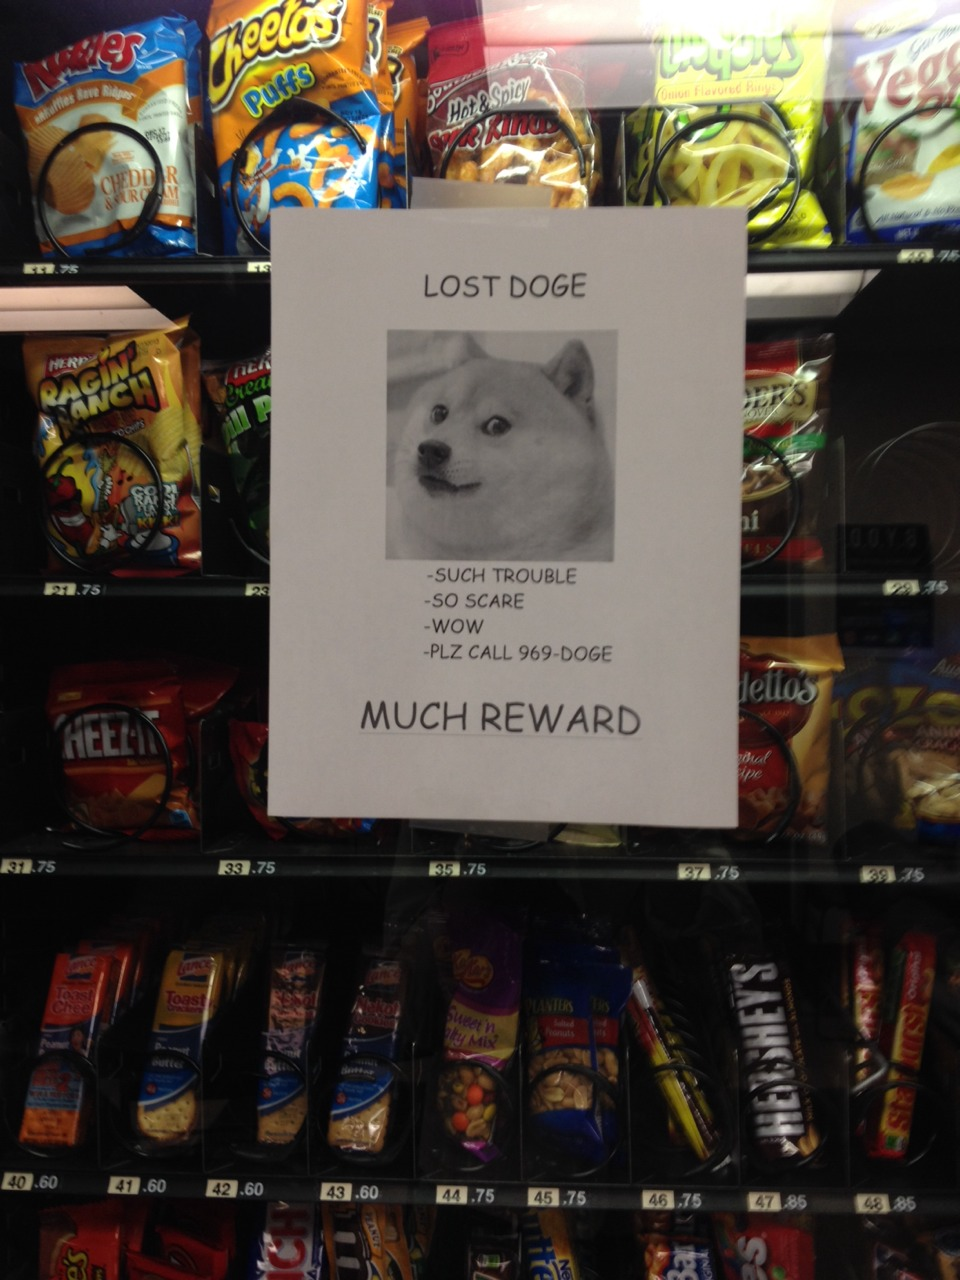 ewebean: IM LAUGHING SO MUCH HOLY SHIT SOMEONE PUT THIS IN OUR STUDENT LOUNGE